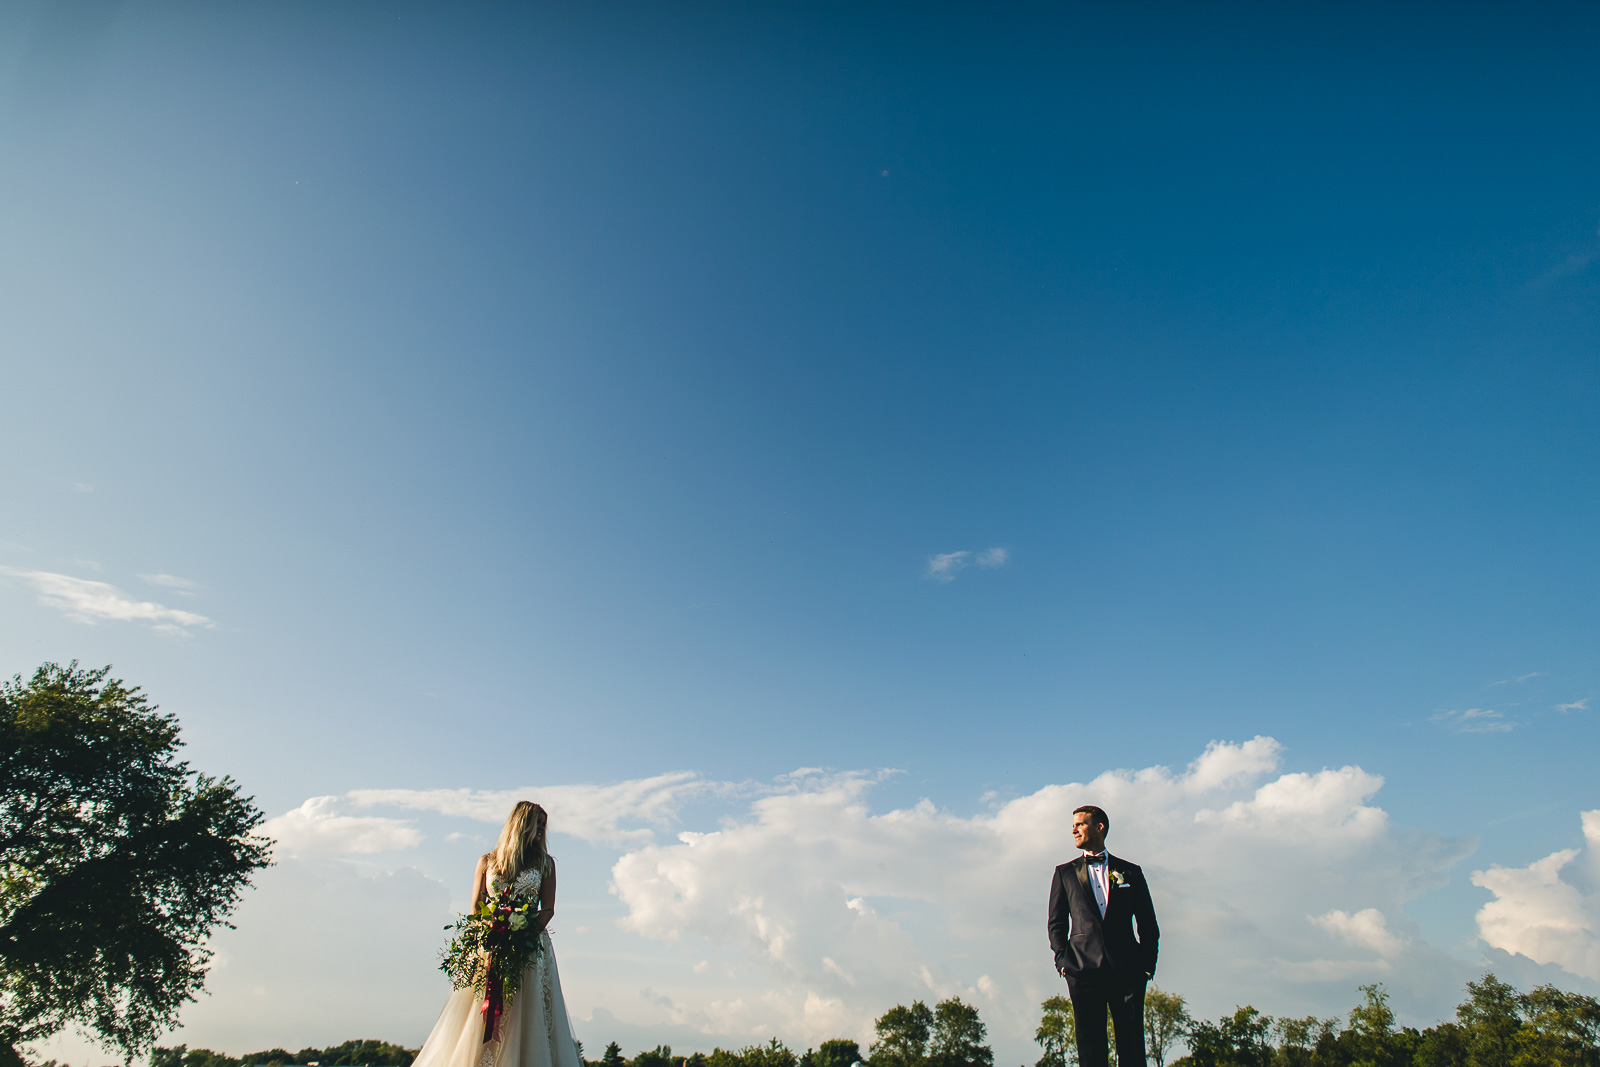 76 chicago wedding photographer best portraits during weddings review - 2018 in Review // My Favorite Chicago Wedding Photography Portraits